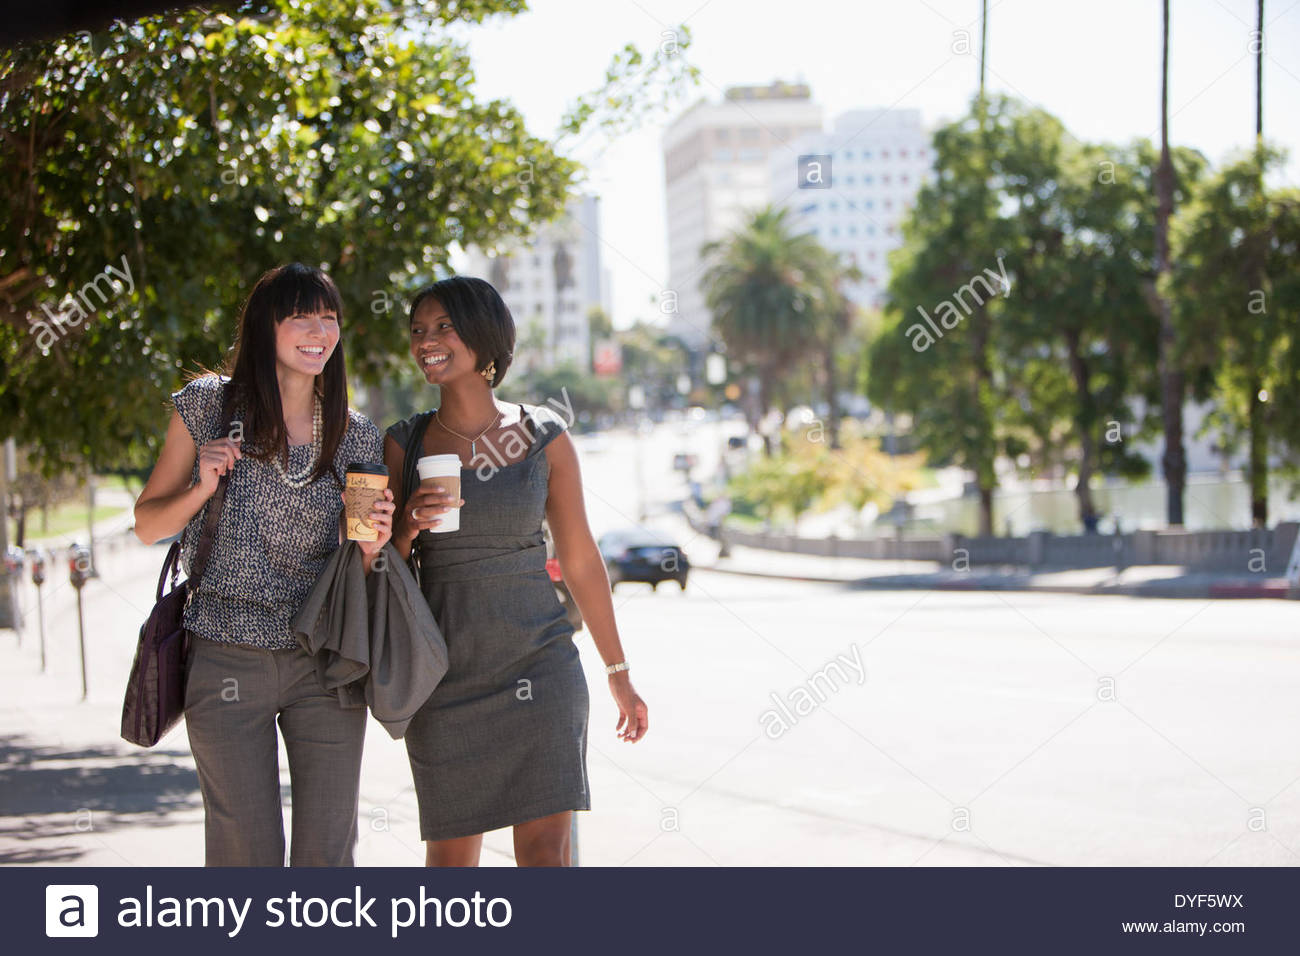 Businesswomen walking together outdoors - Stock Image